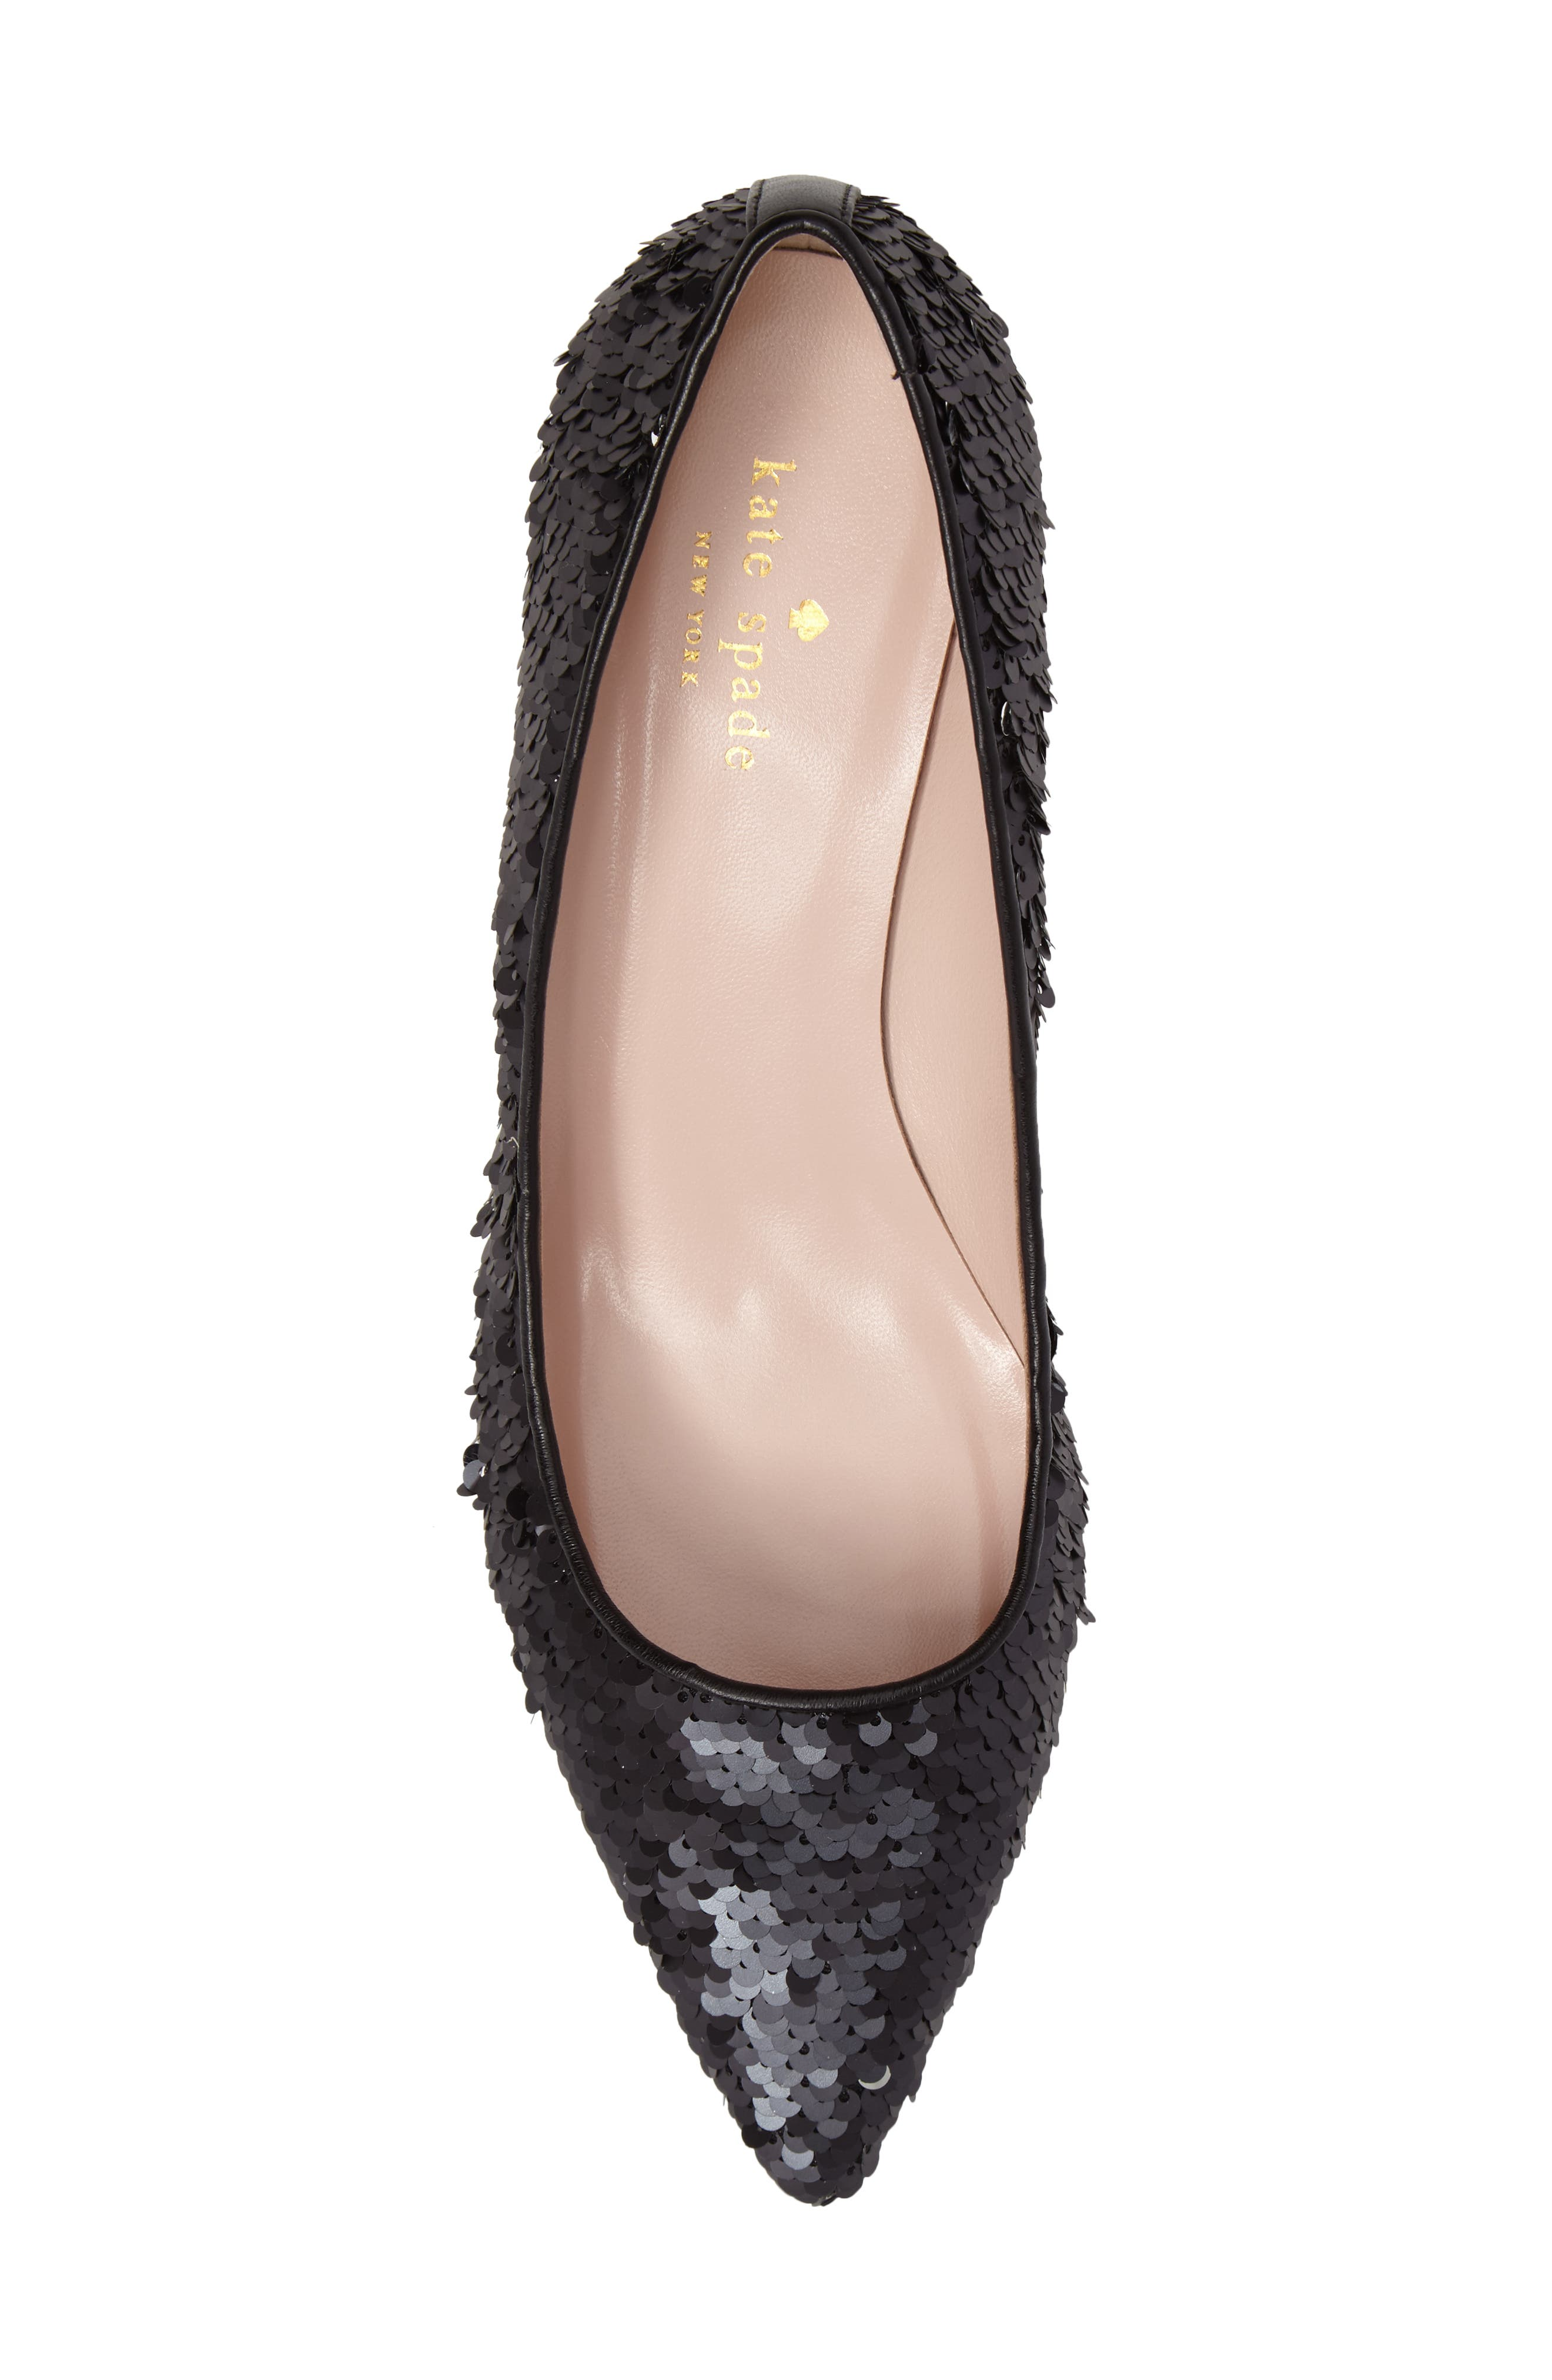 mauna sequin pump,                             Alternate thumbnail 11, color,